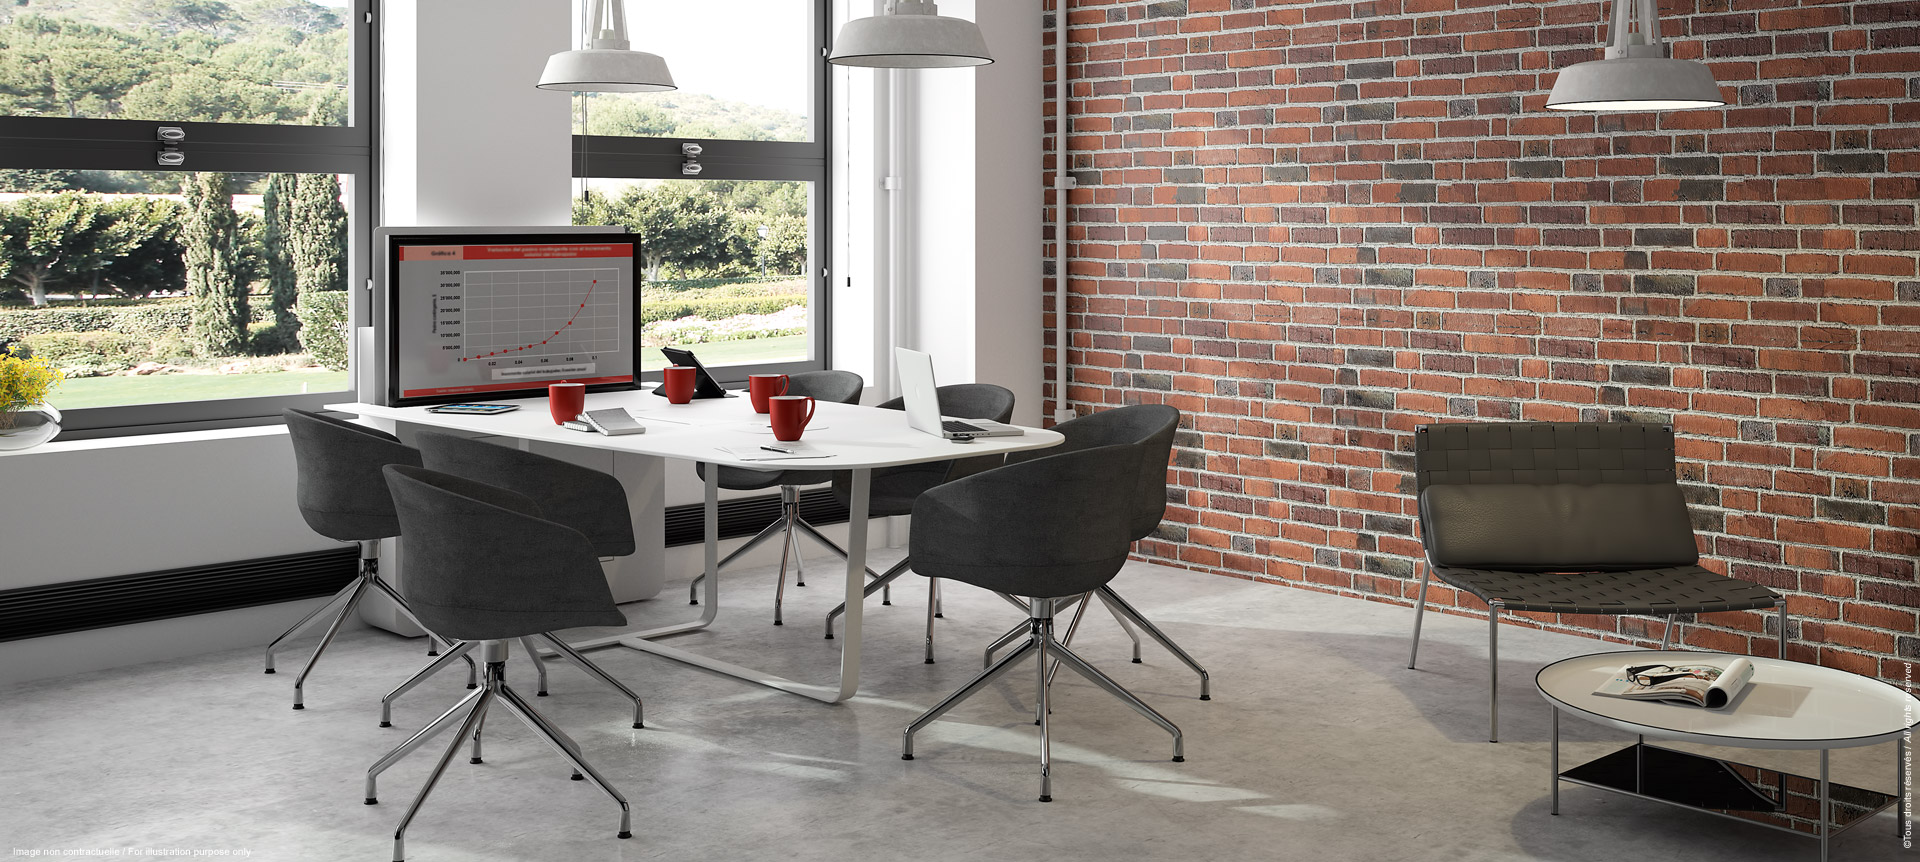 WEMEET SHARE RETRACTABLE -Design meeting table with retractable screen